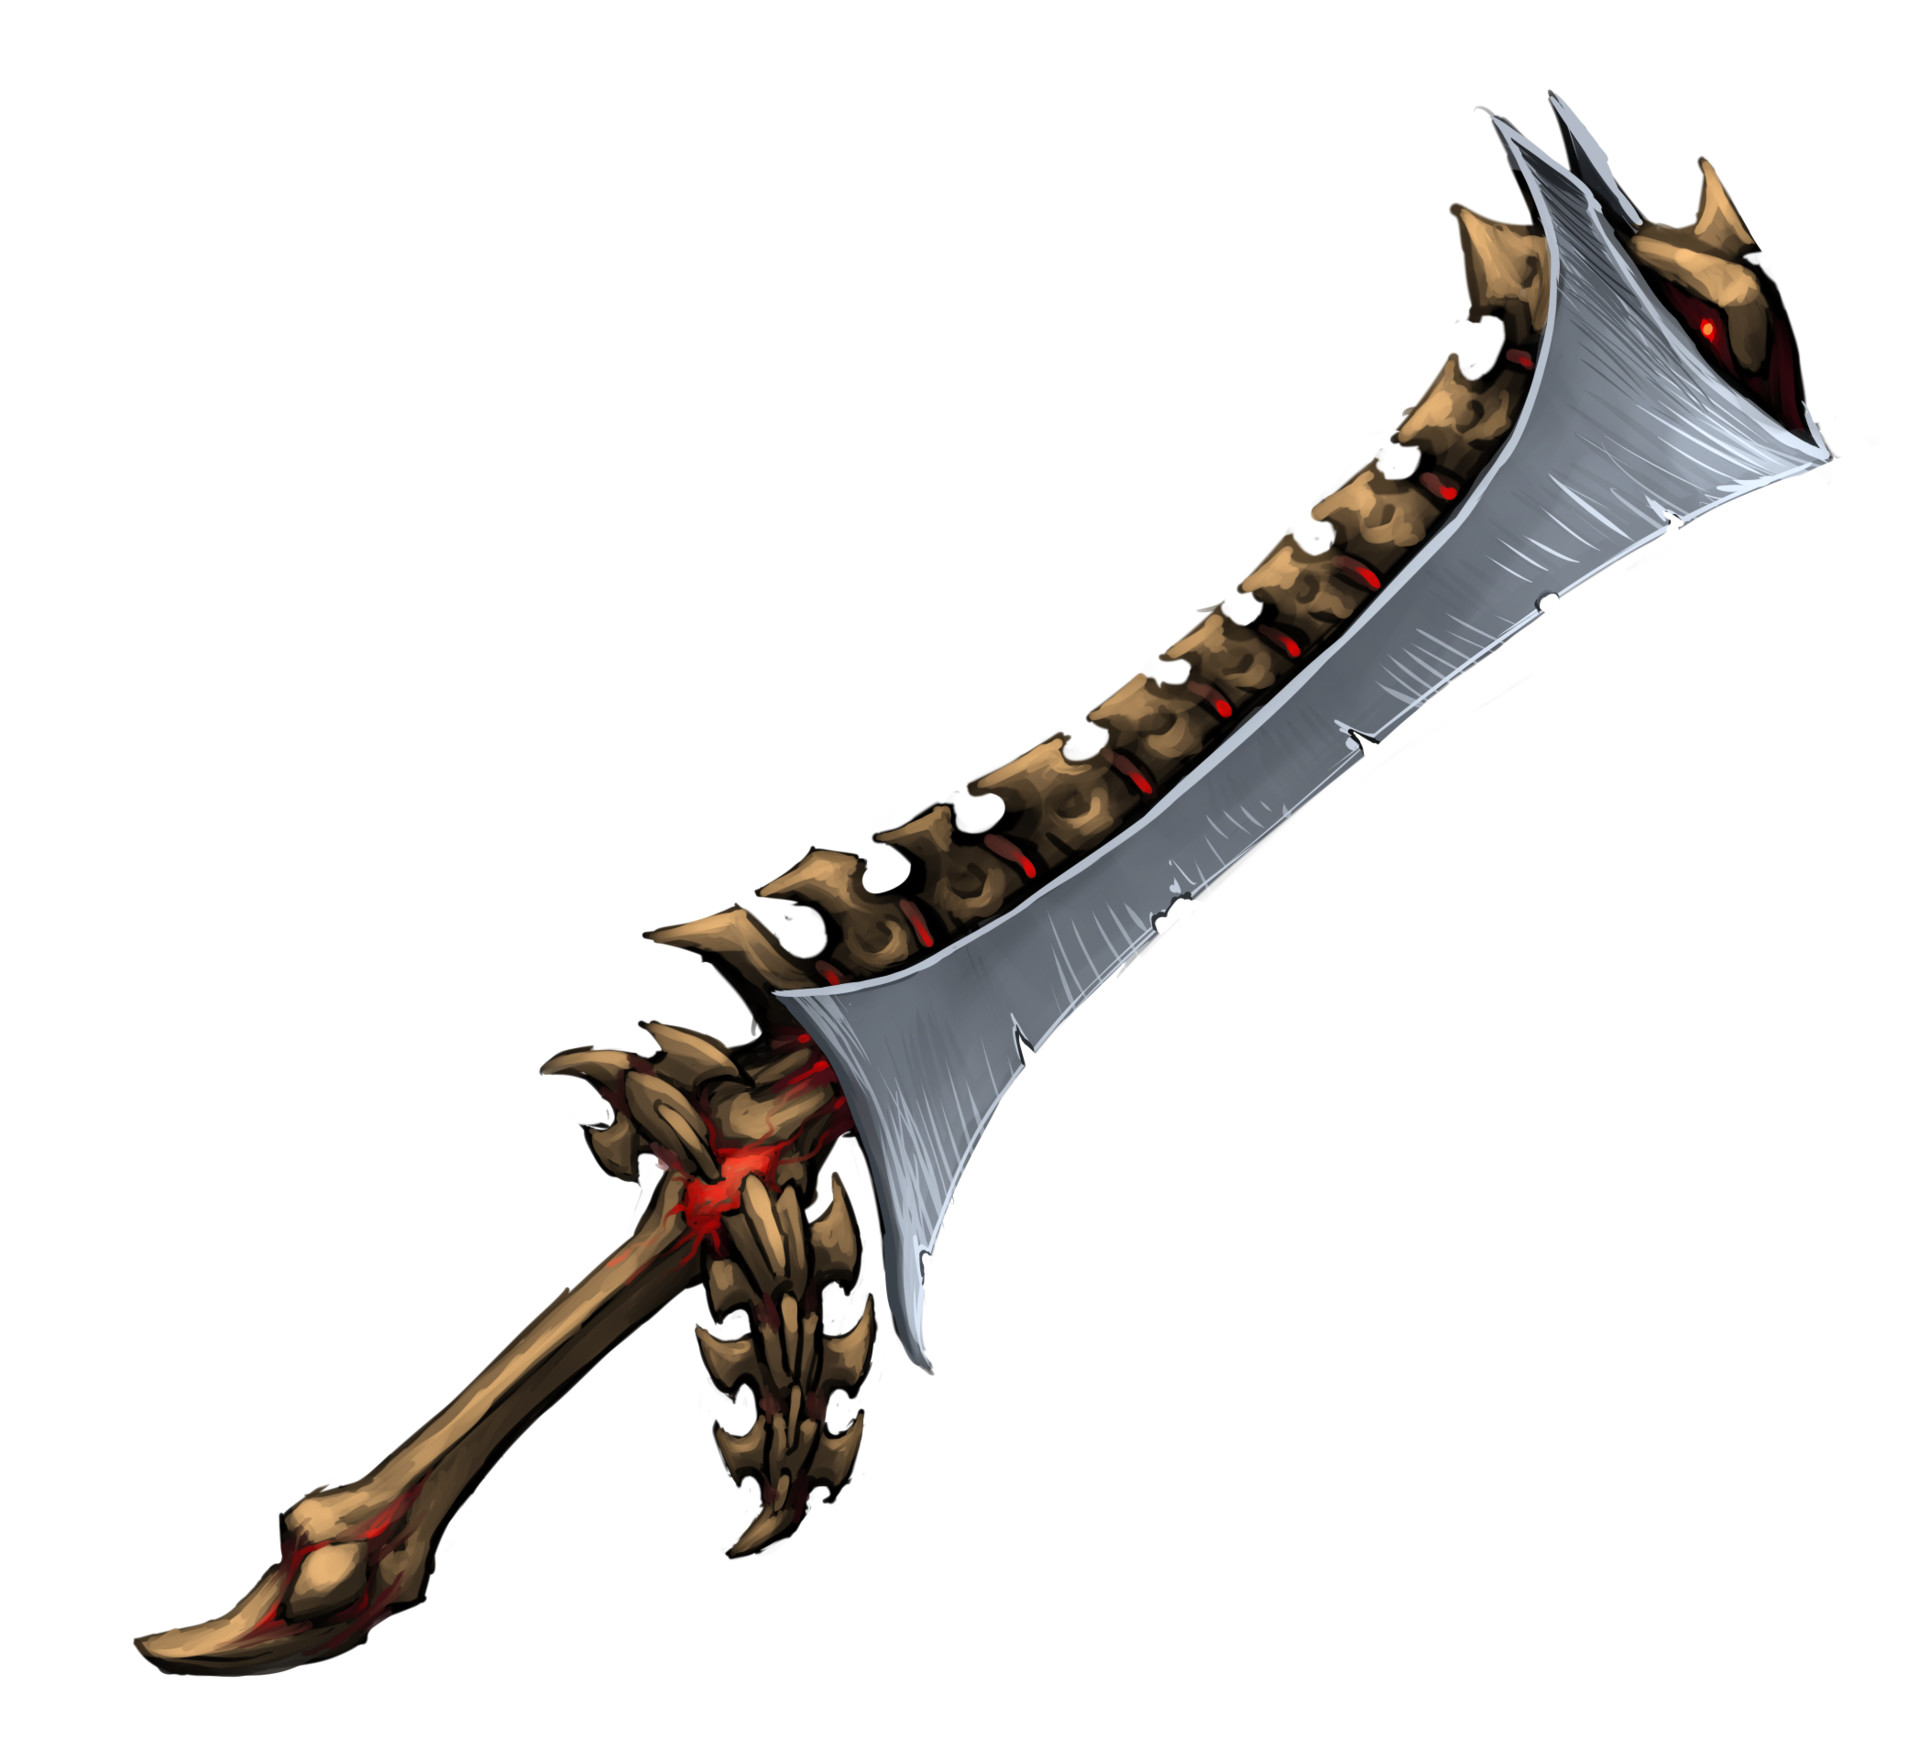 Joe bush sword concept